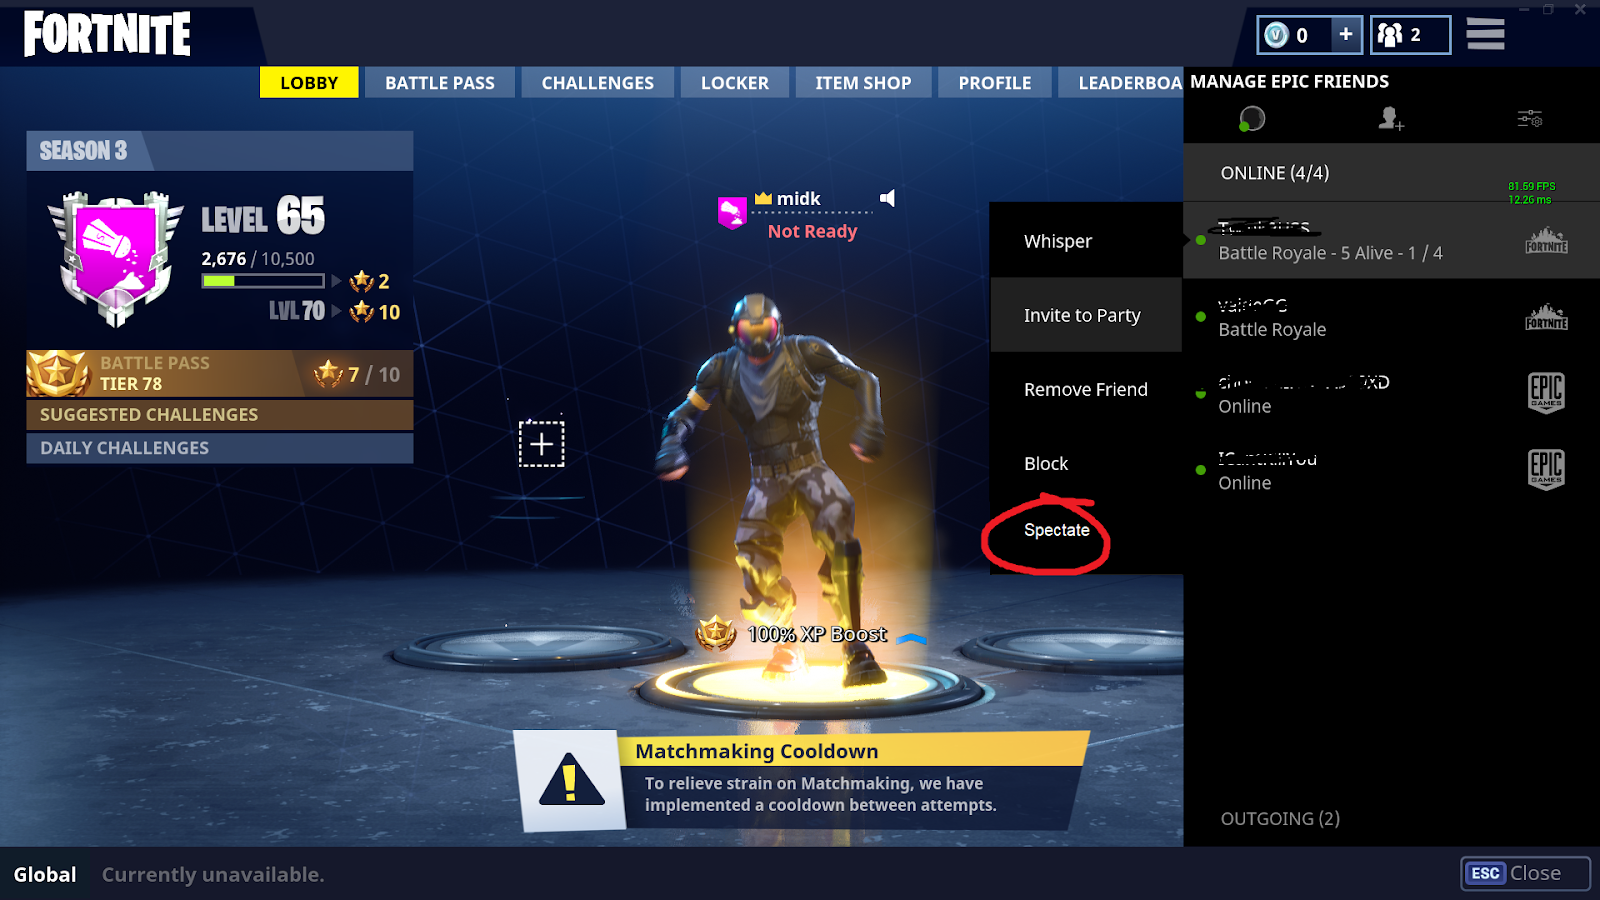 How to spectate in Fortnite